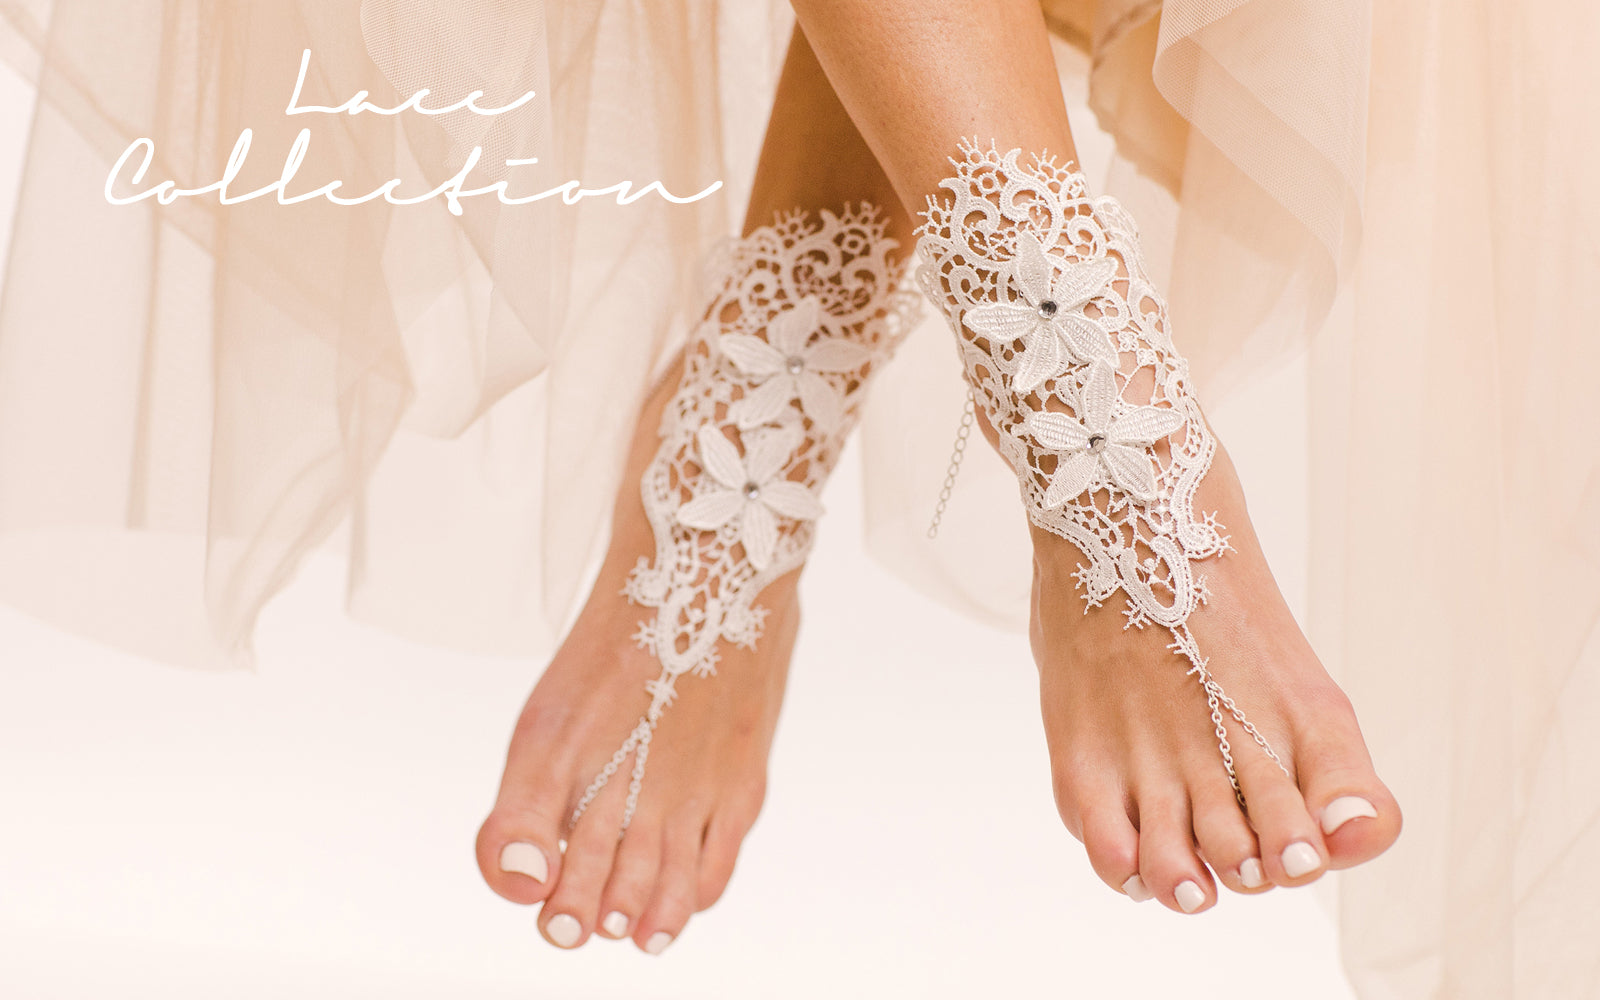 e2c3330a2fd9b Lace / Crochet Collection of Barefoot Sandals and Foot Jewelry ...